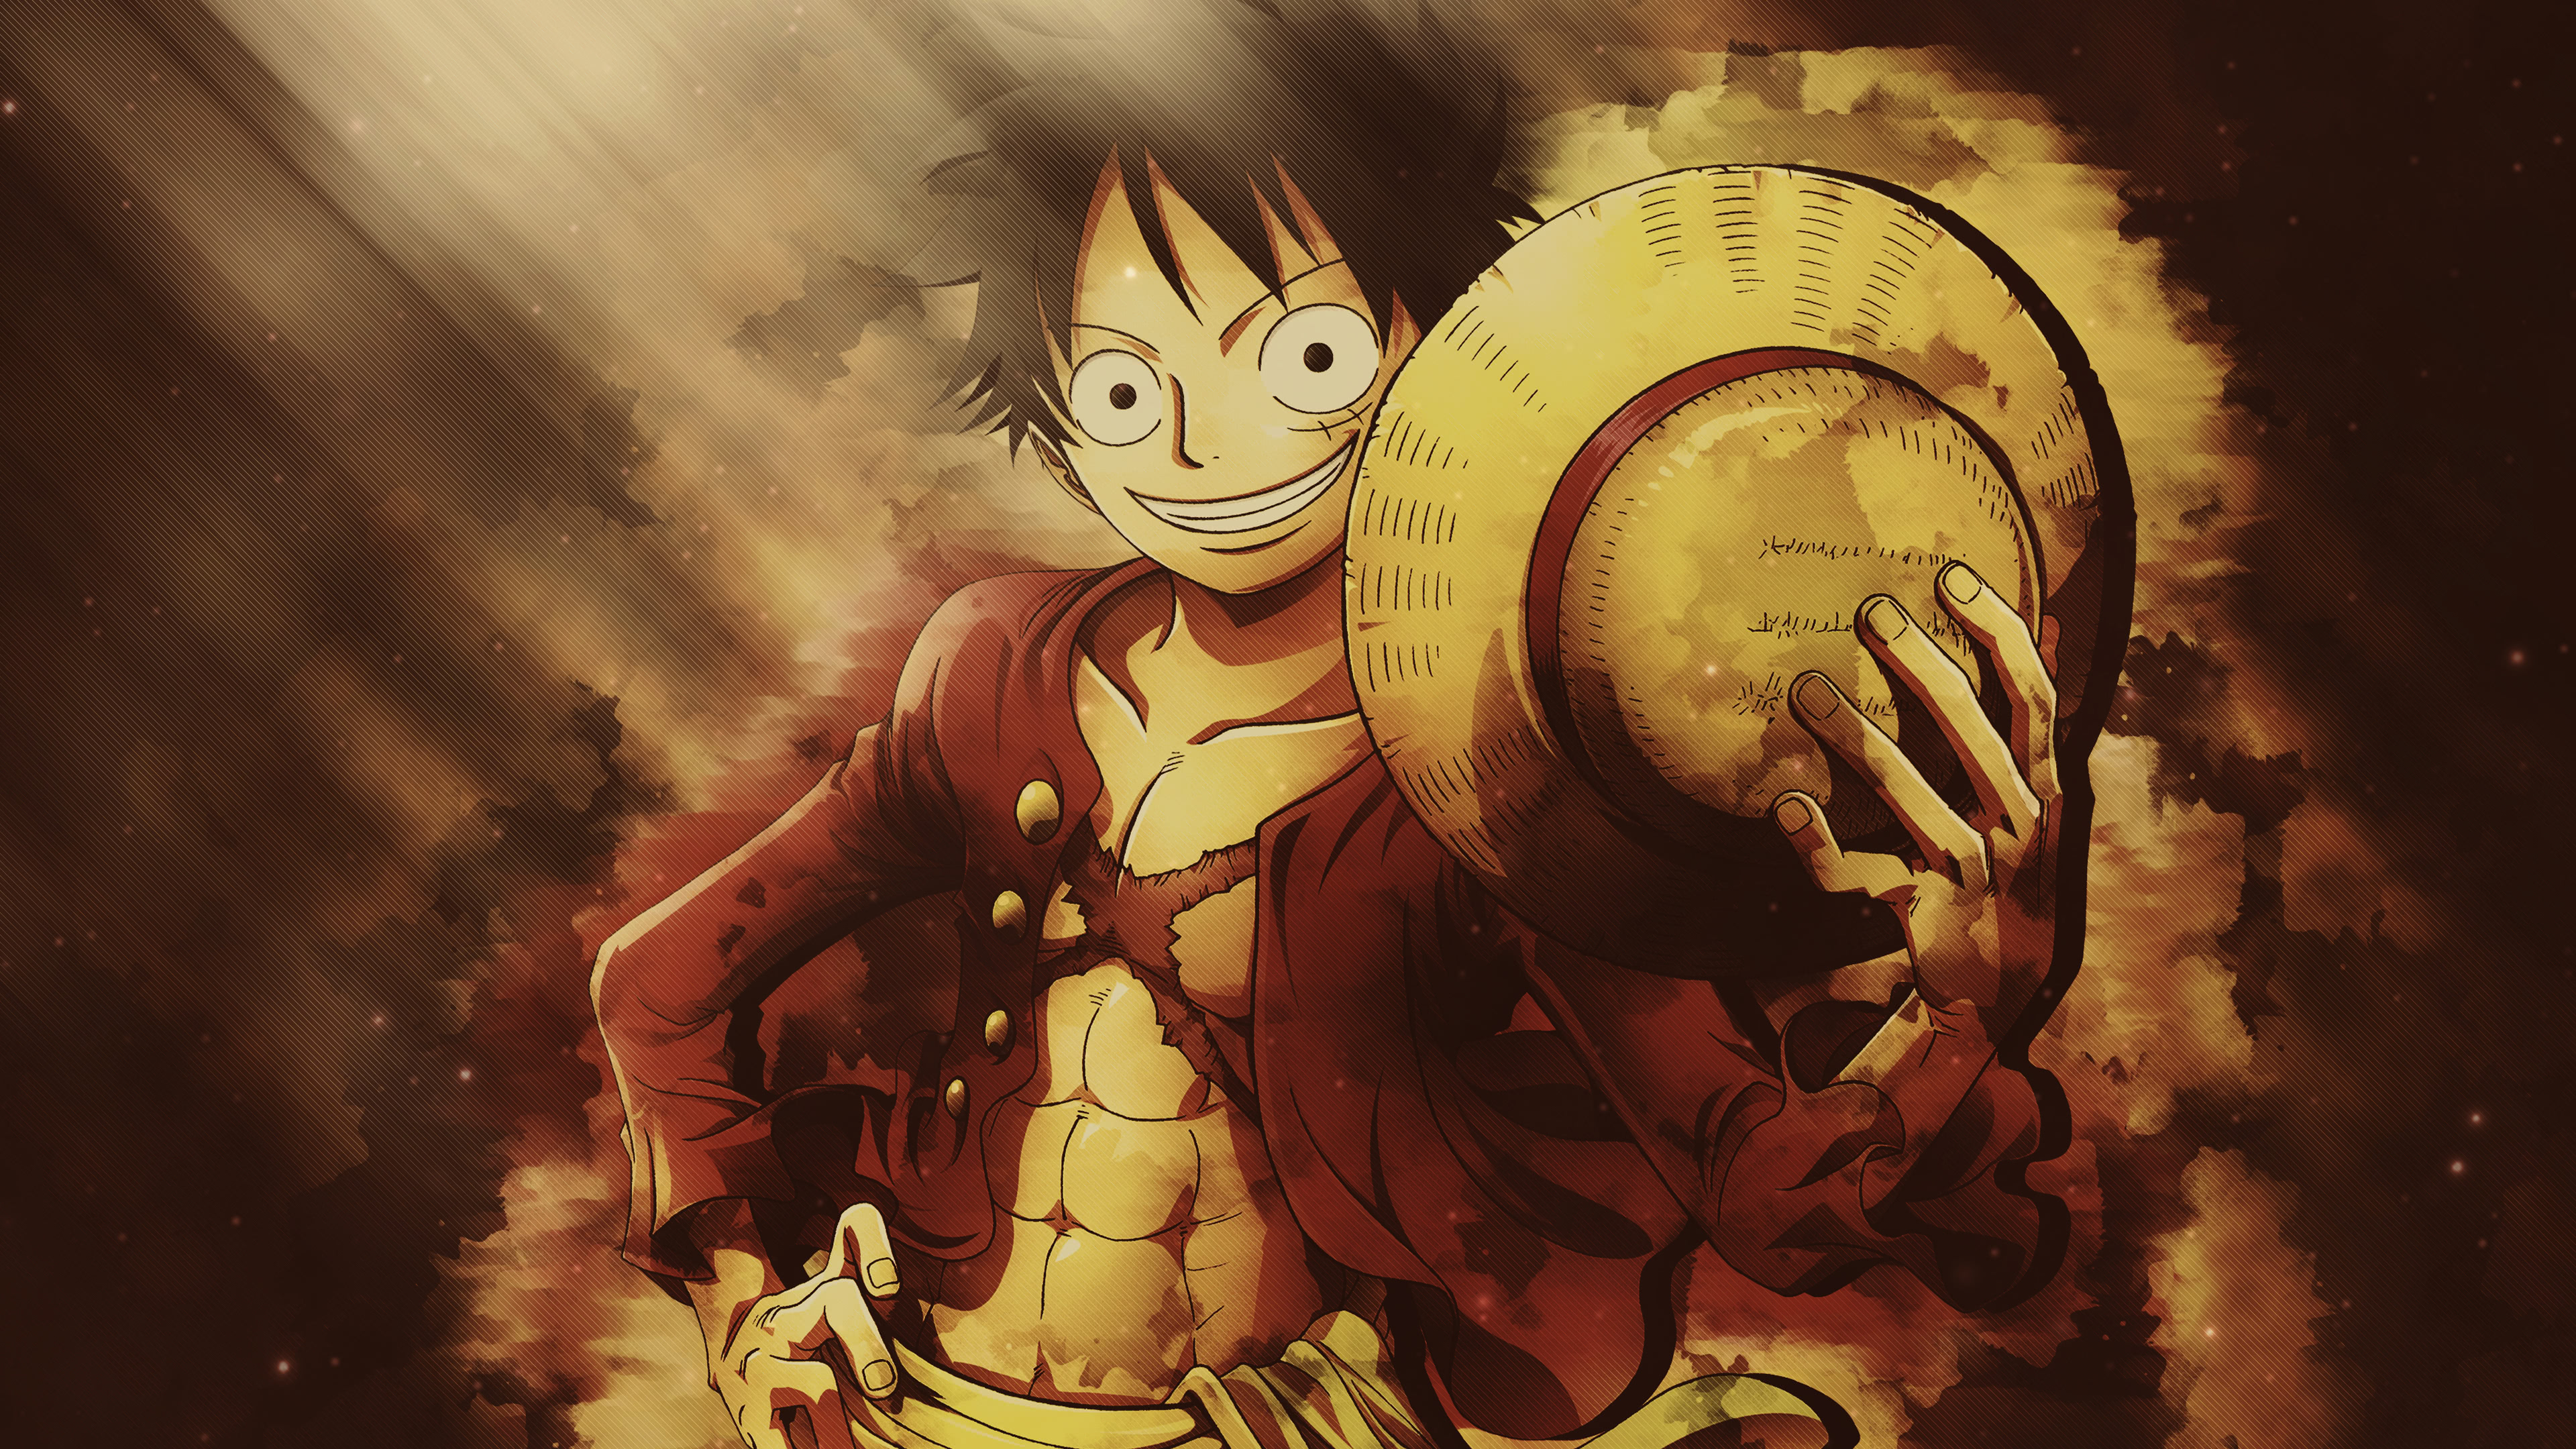 One Piece Monkey D Luffy Straw Hat Portrait Uhd 4k Wallpaper Pixelz